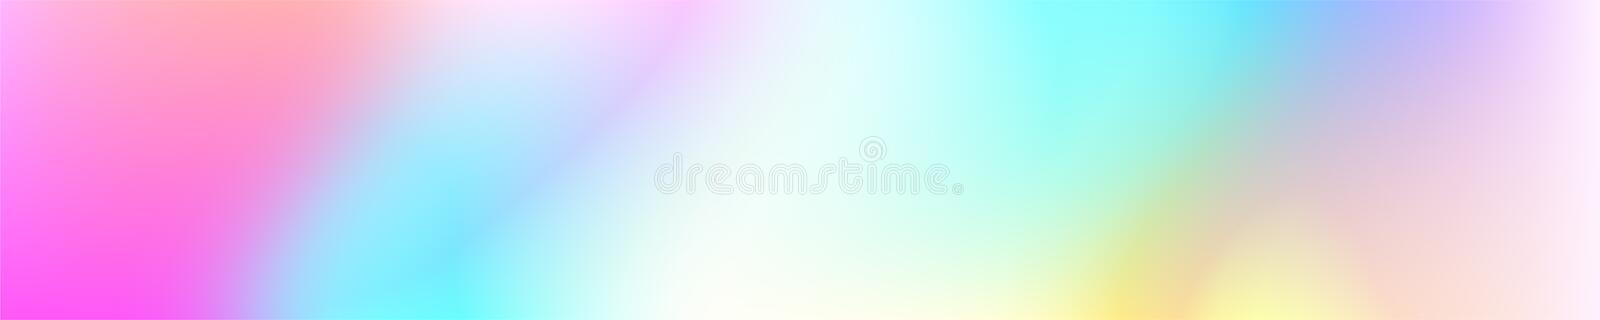 Holographic Vector Background. Iridescent Foil. Glitch Hologram. Pastel neon rainbow. Ultraviolet metallic paper. Template for presentation. Cover to web vector illustration